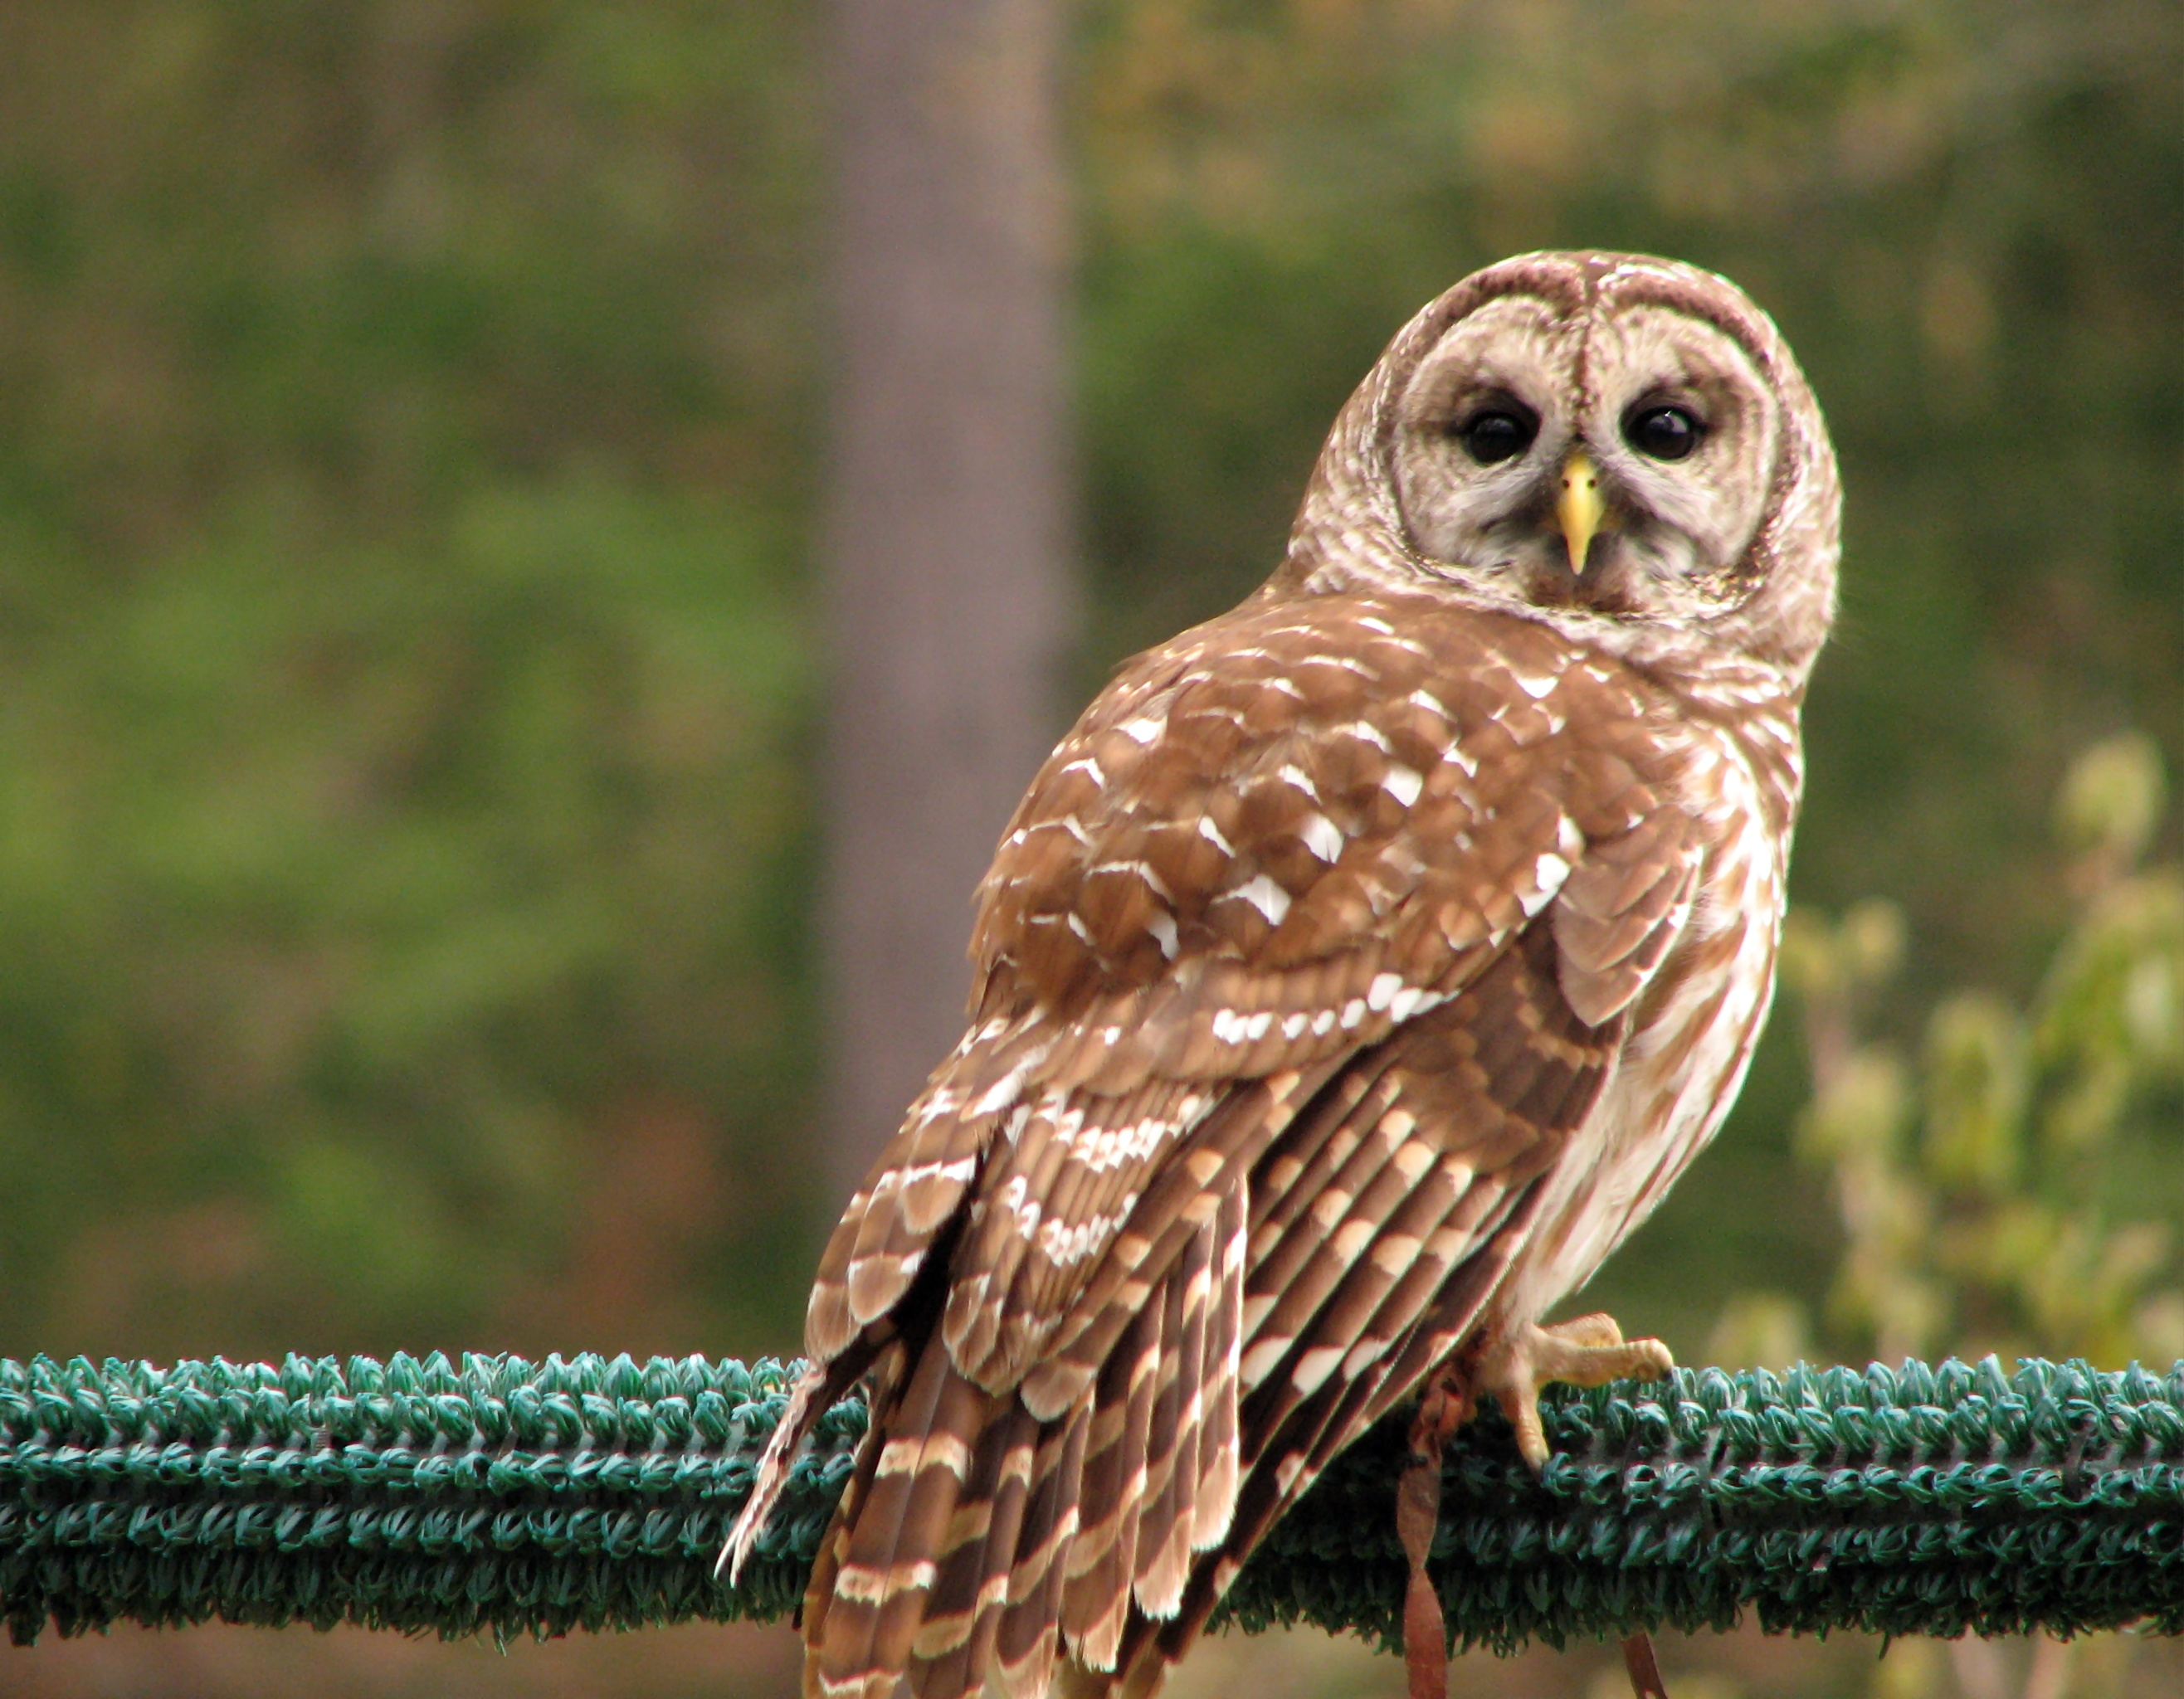 Close-up of a barred owl photo